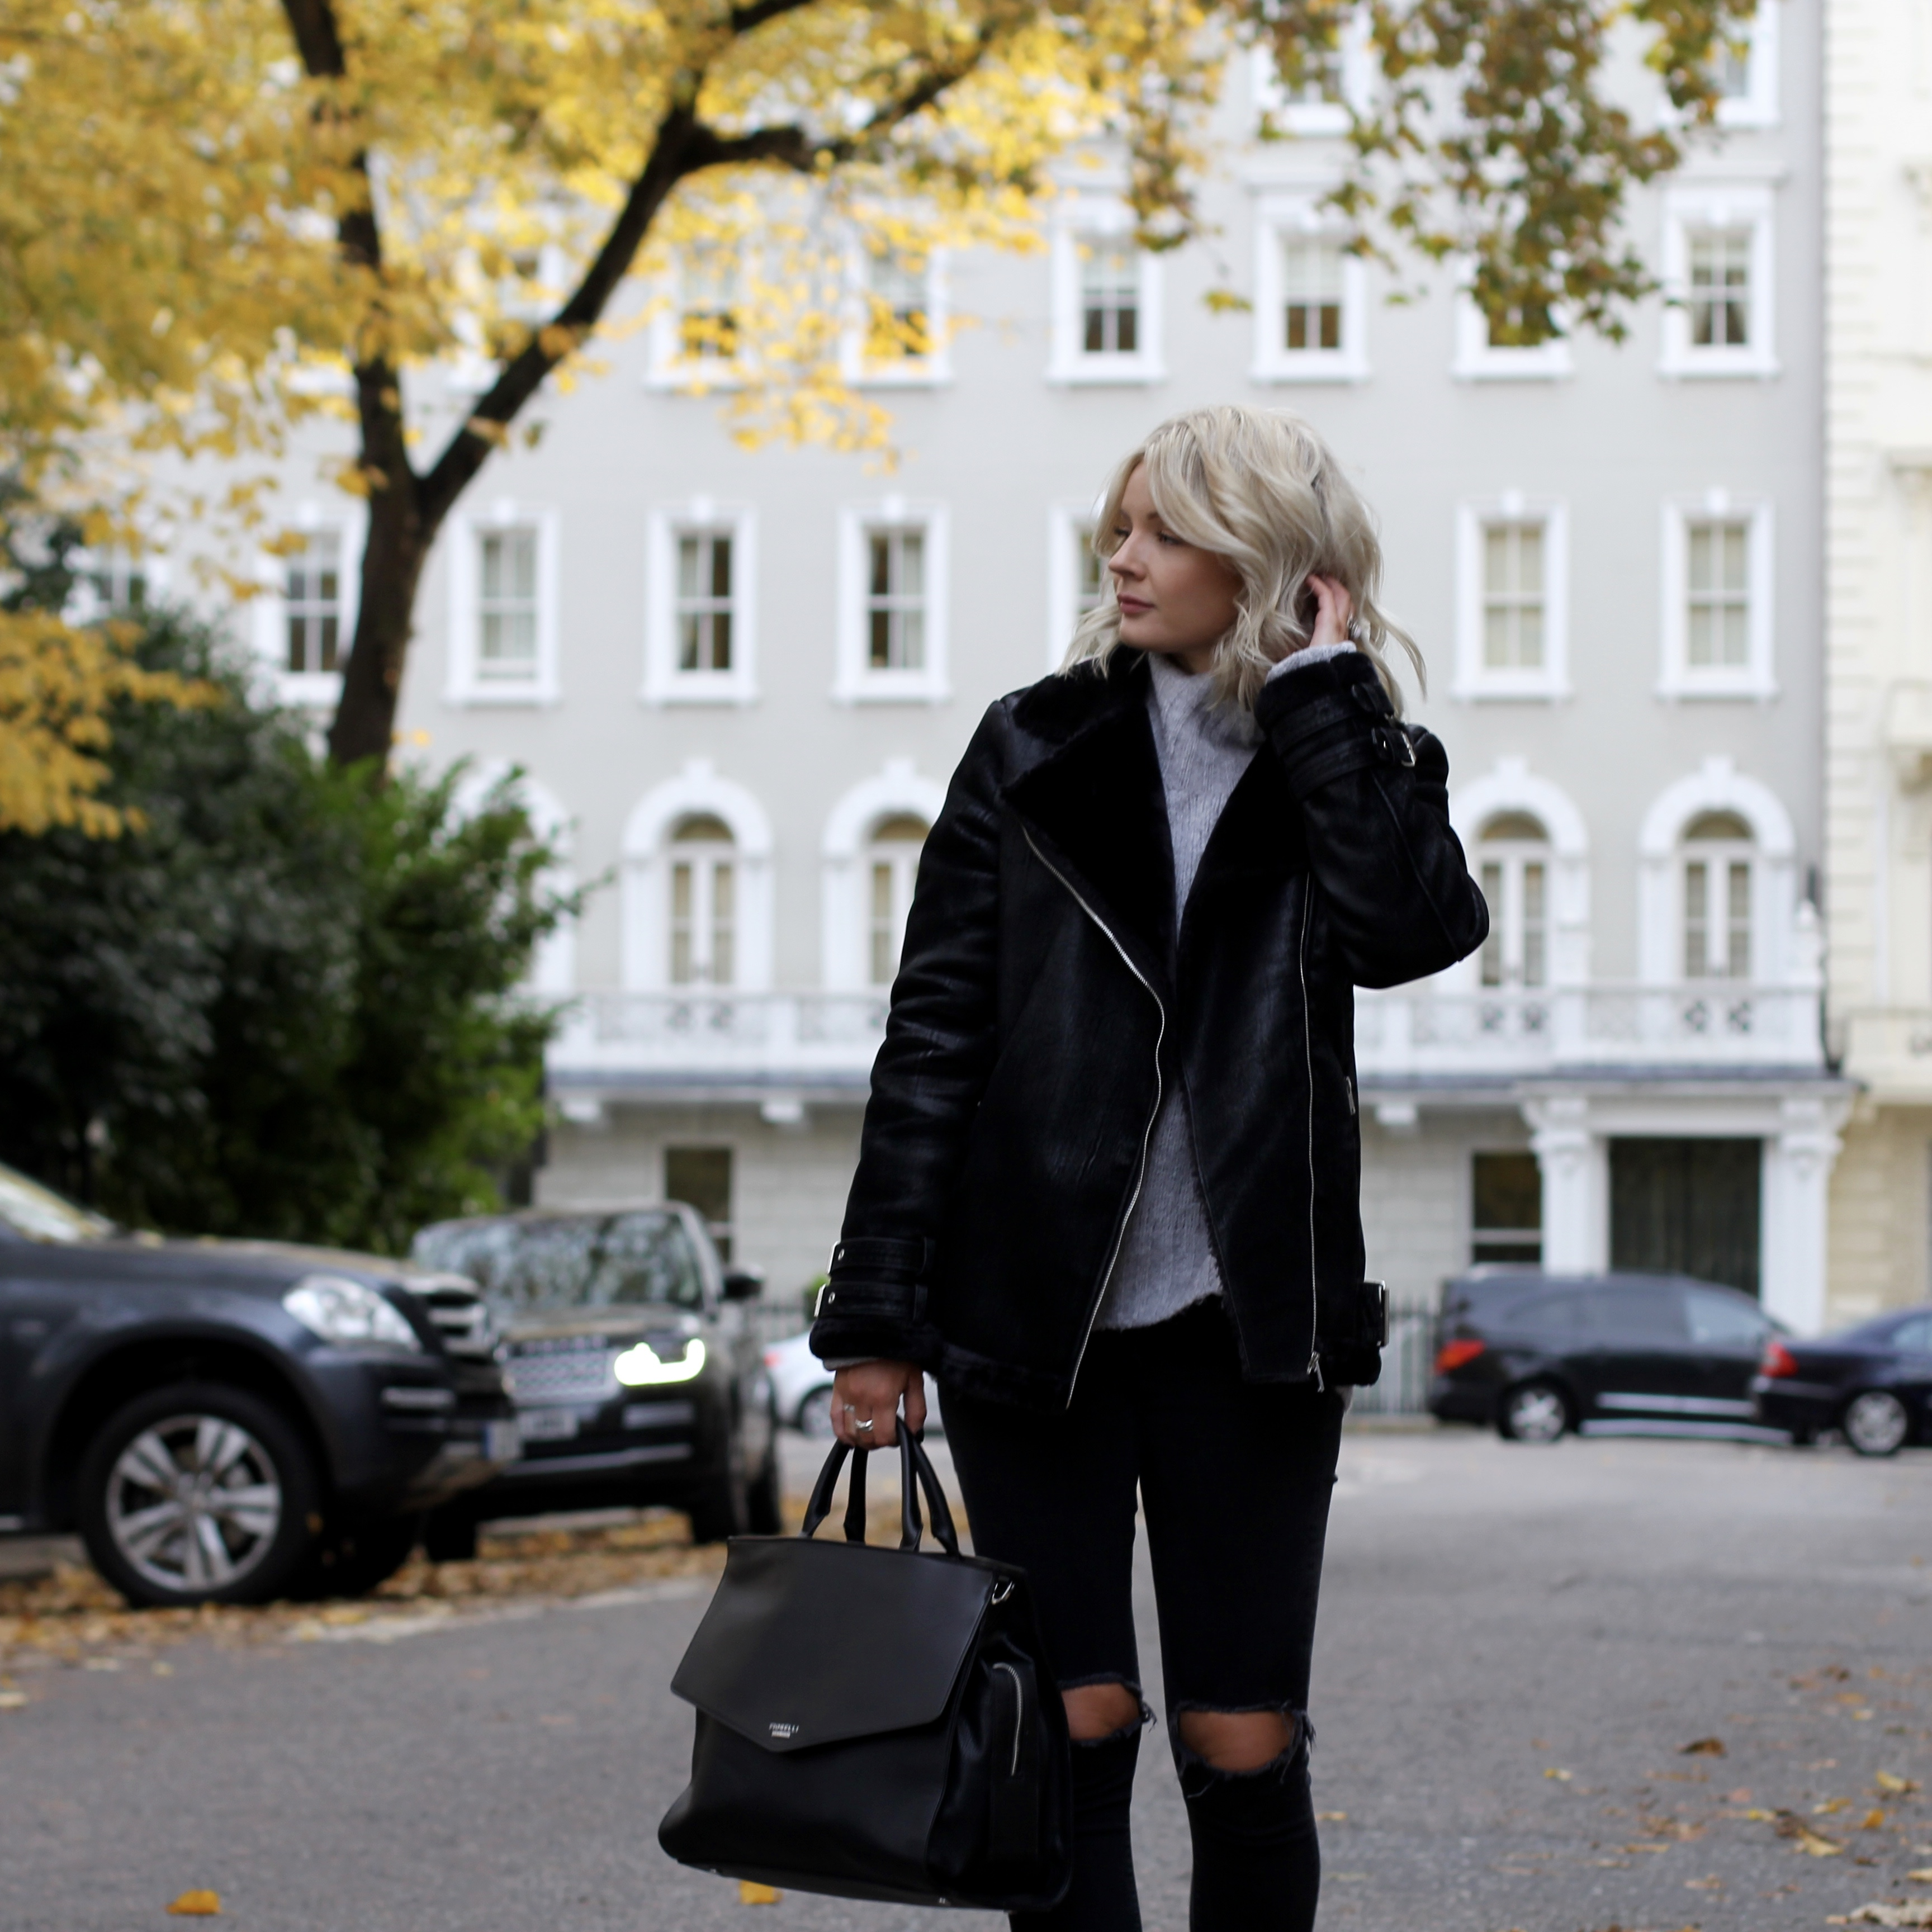 laura byrnes, lauras little locket, fashion blogger, grey oversized jumper, aviator coat, autumnal clothes, how to dress in autumn, black stud boots, black jeans, black mia fiorelli bag, blonde wavy hair,